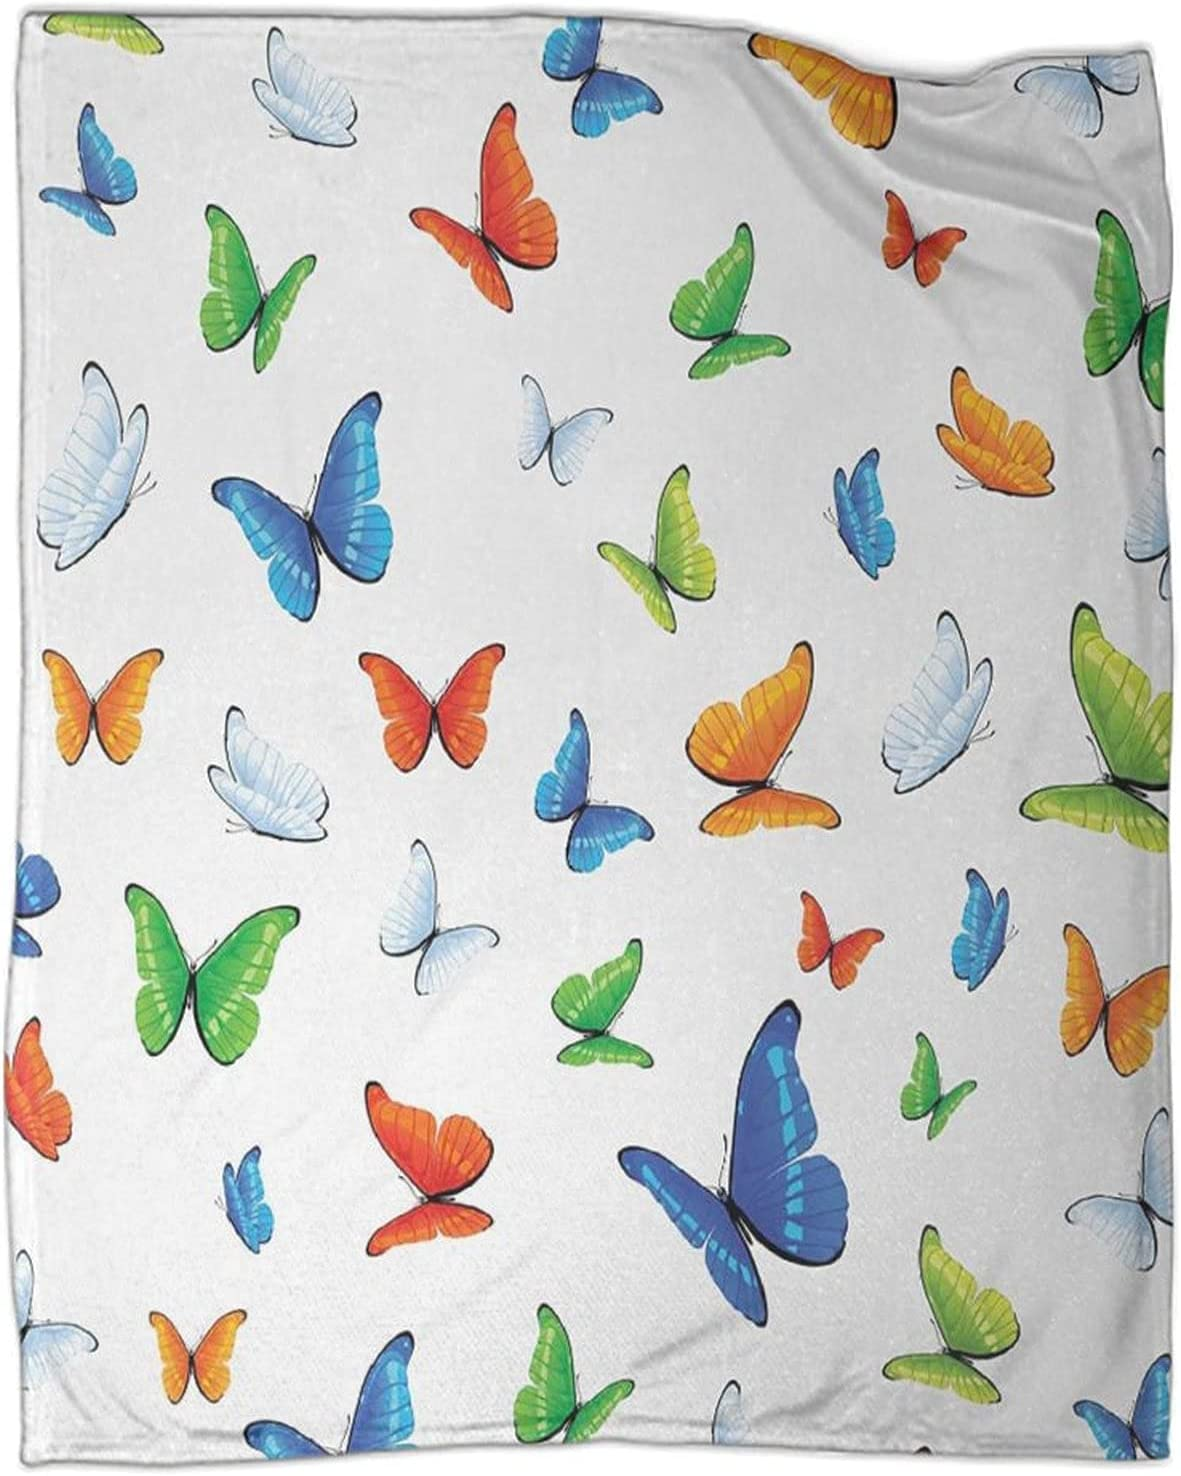 Butterflies Animal Clipart Ecology Limited time trial Sales of SALE items from new works price Environment Joyfu